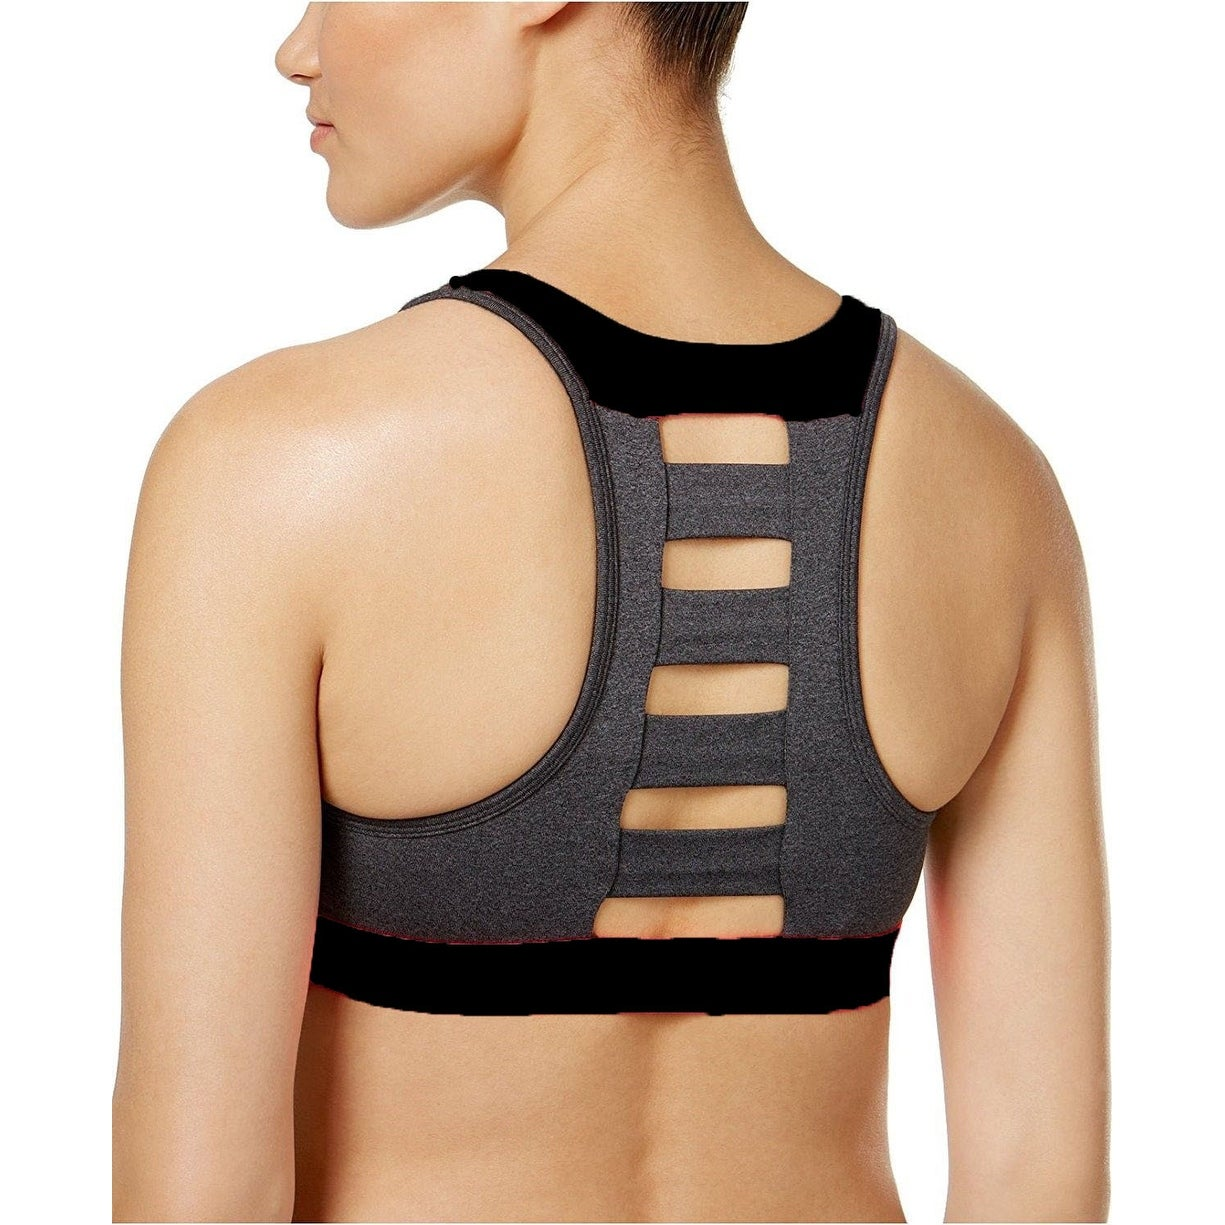 35d590919f959 Shop Ideology Women s Ladder Back Medium Impact Sports Bra Noir Grey Small  - s (4 - 6) - Free Shipping On Orders Over  45 - Overstock.com - 23075617